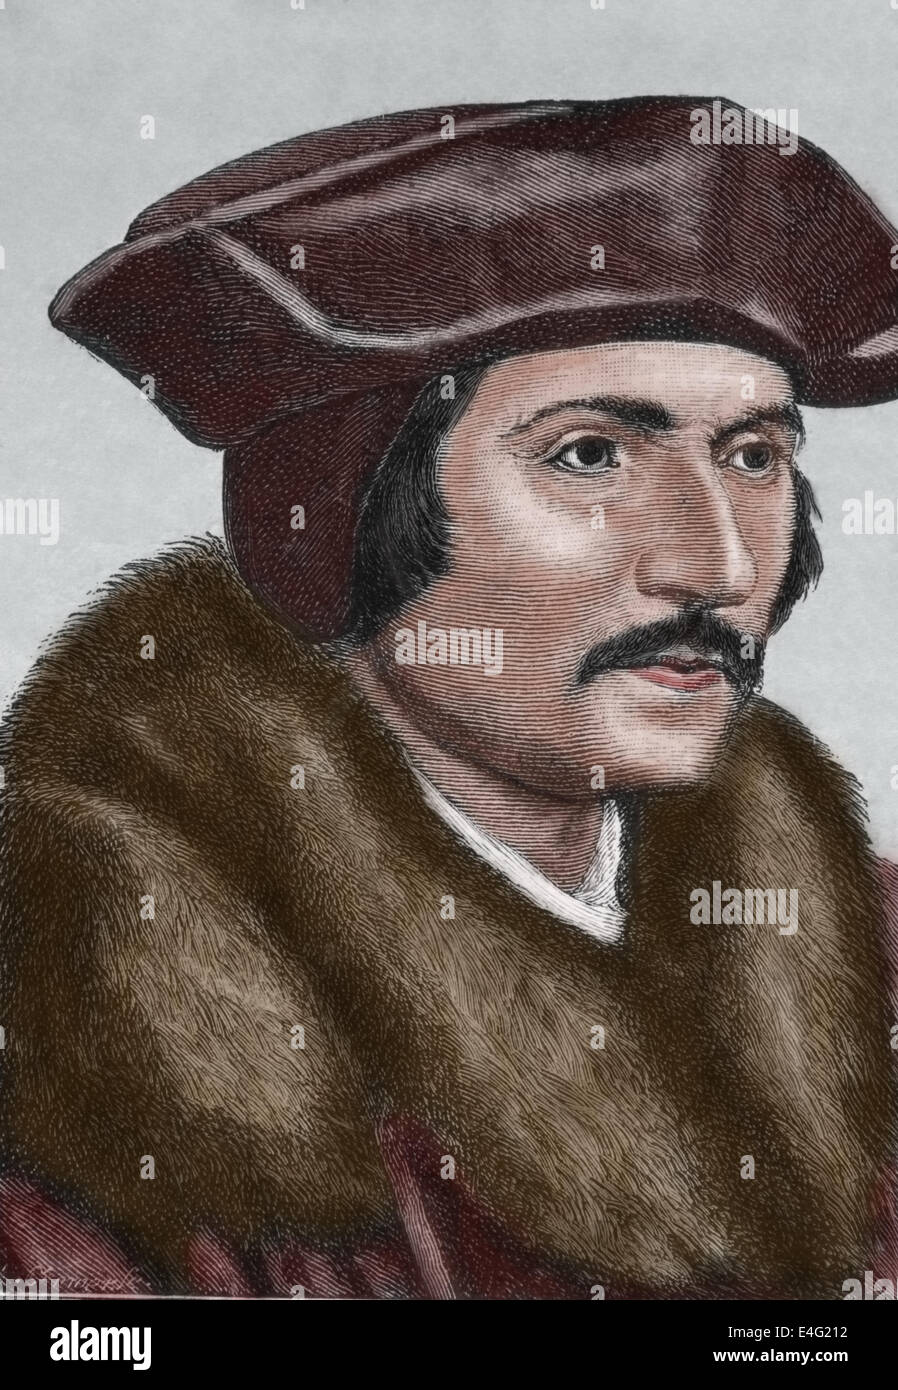 Thomas More (1478-1535). English lawyer, social philosopher, statesman and Renaissance humanist. Engraving by J. - Stock Image